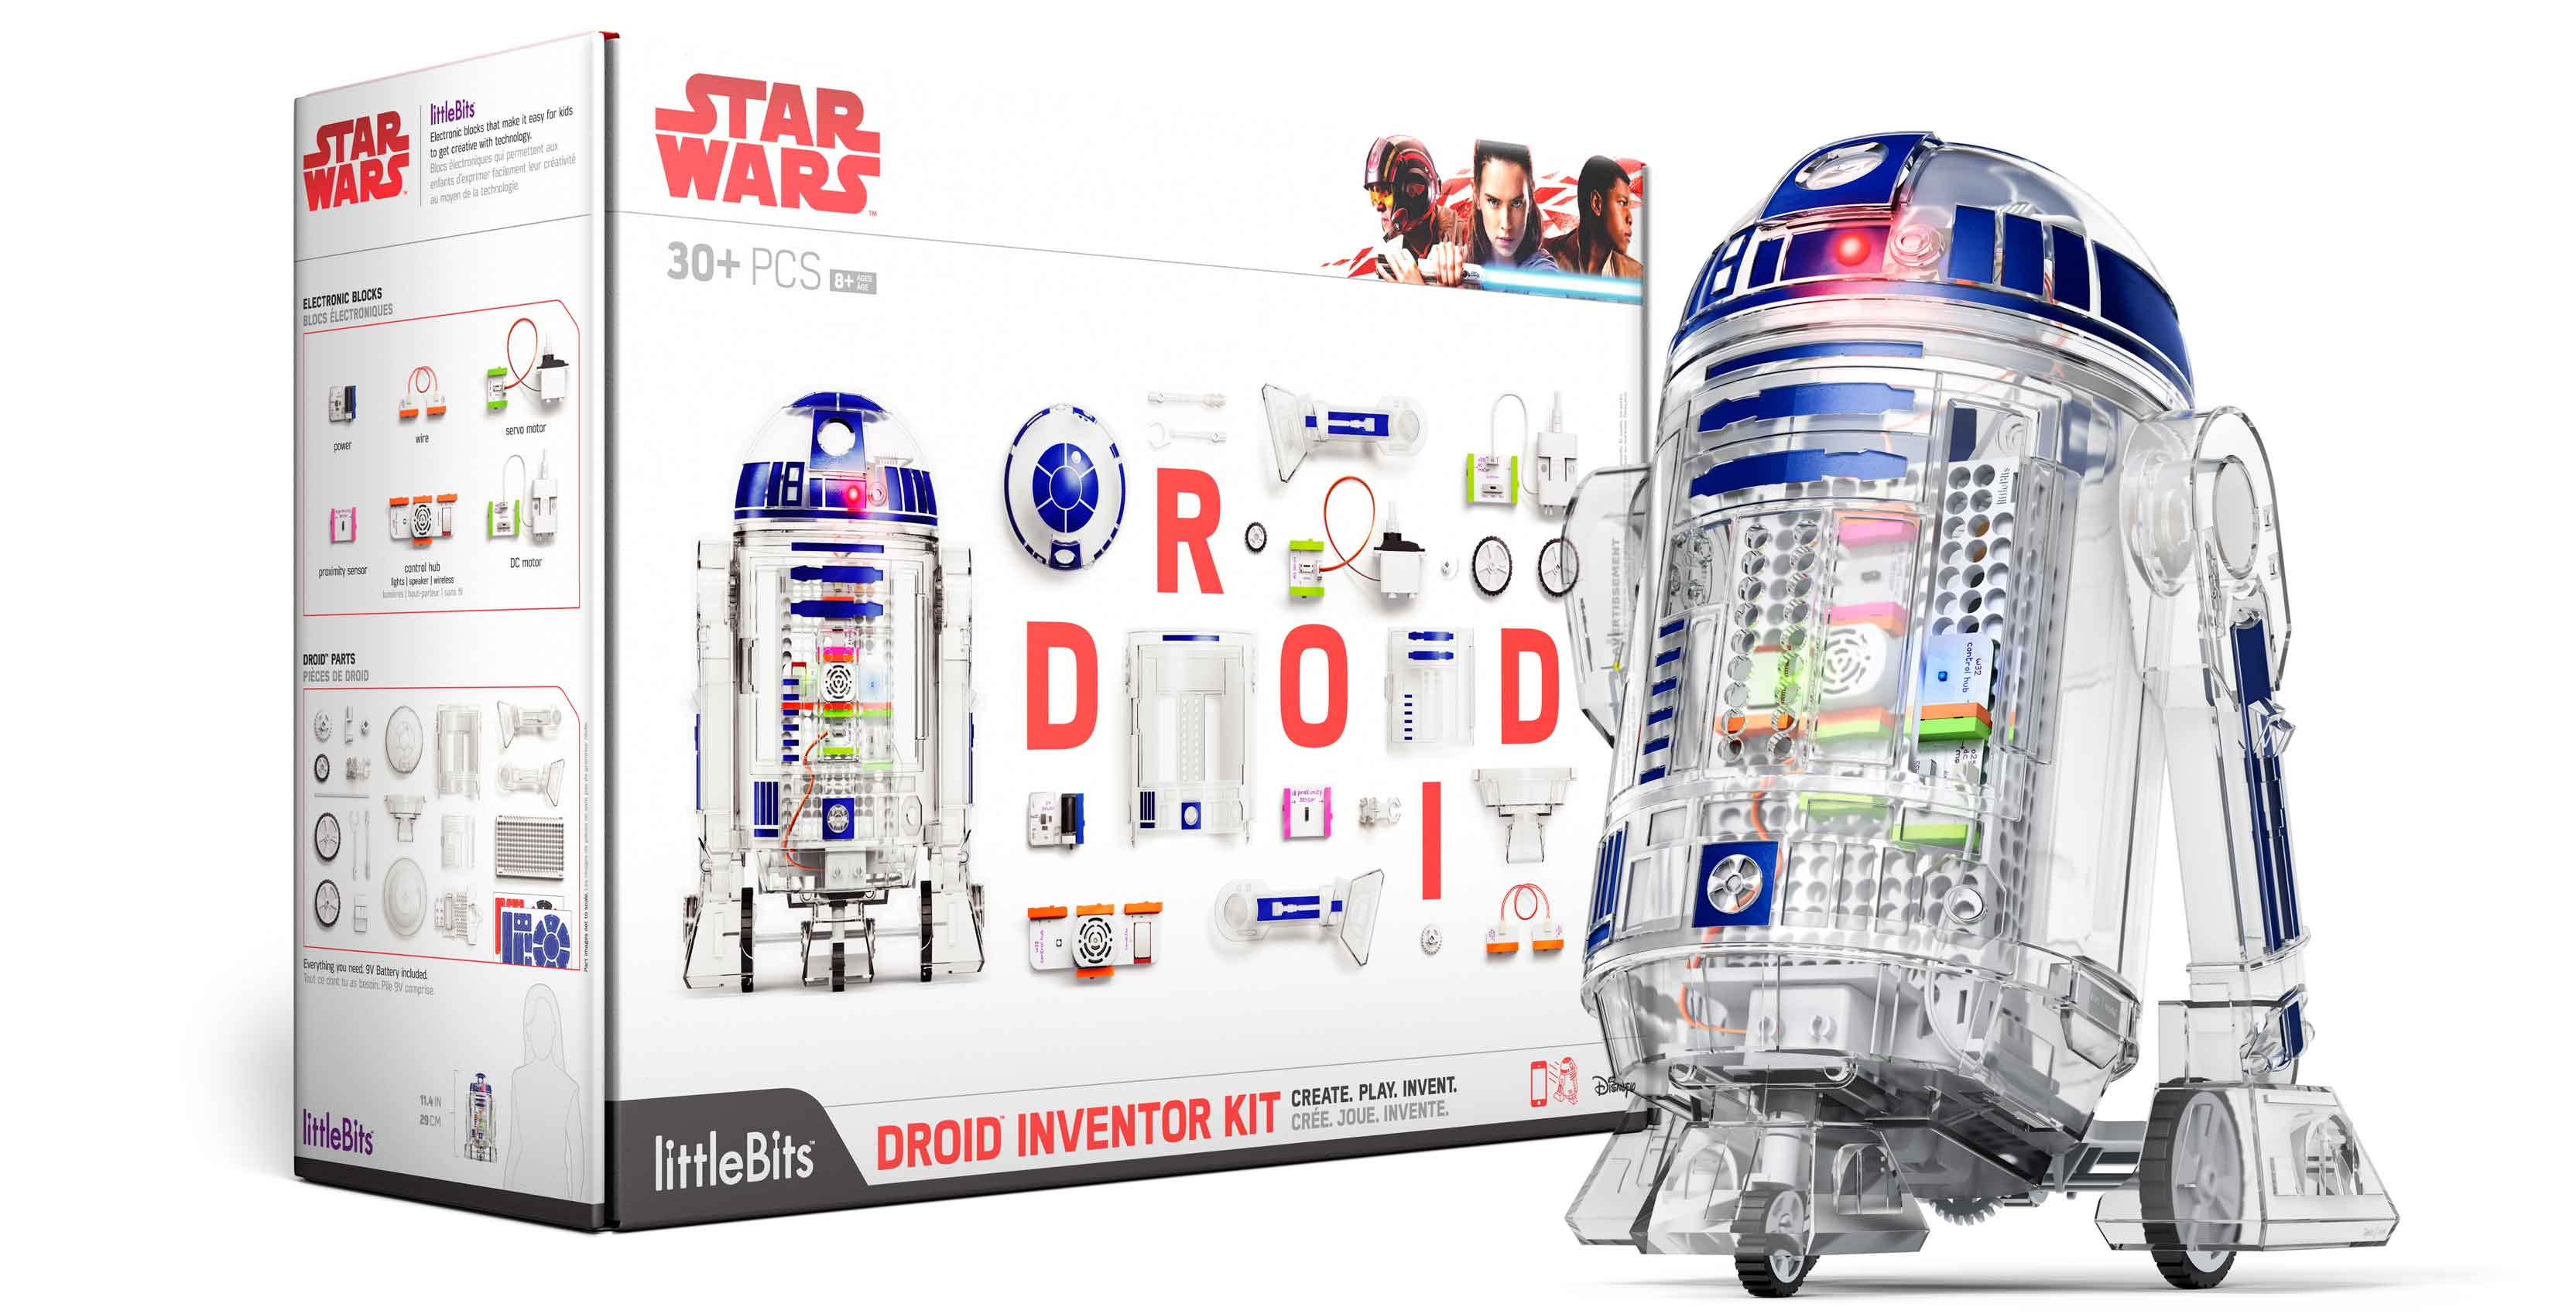 An image showing the Droid Inventor Kit box and completed droid